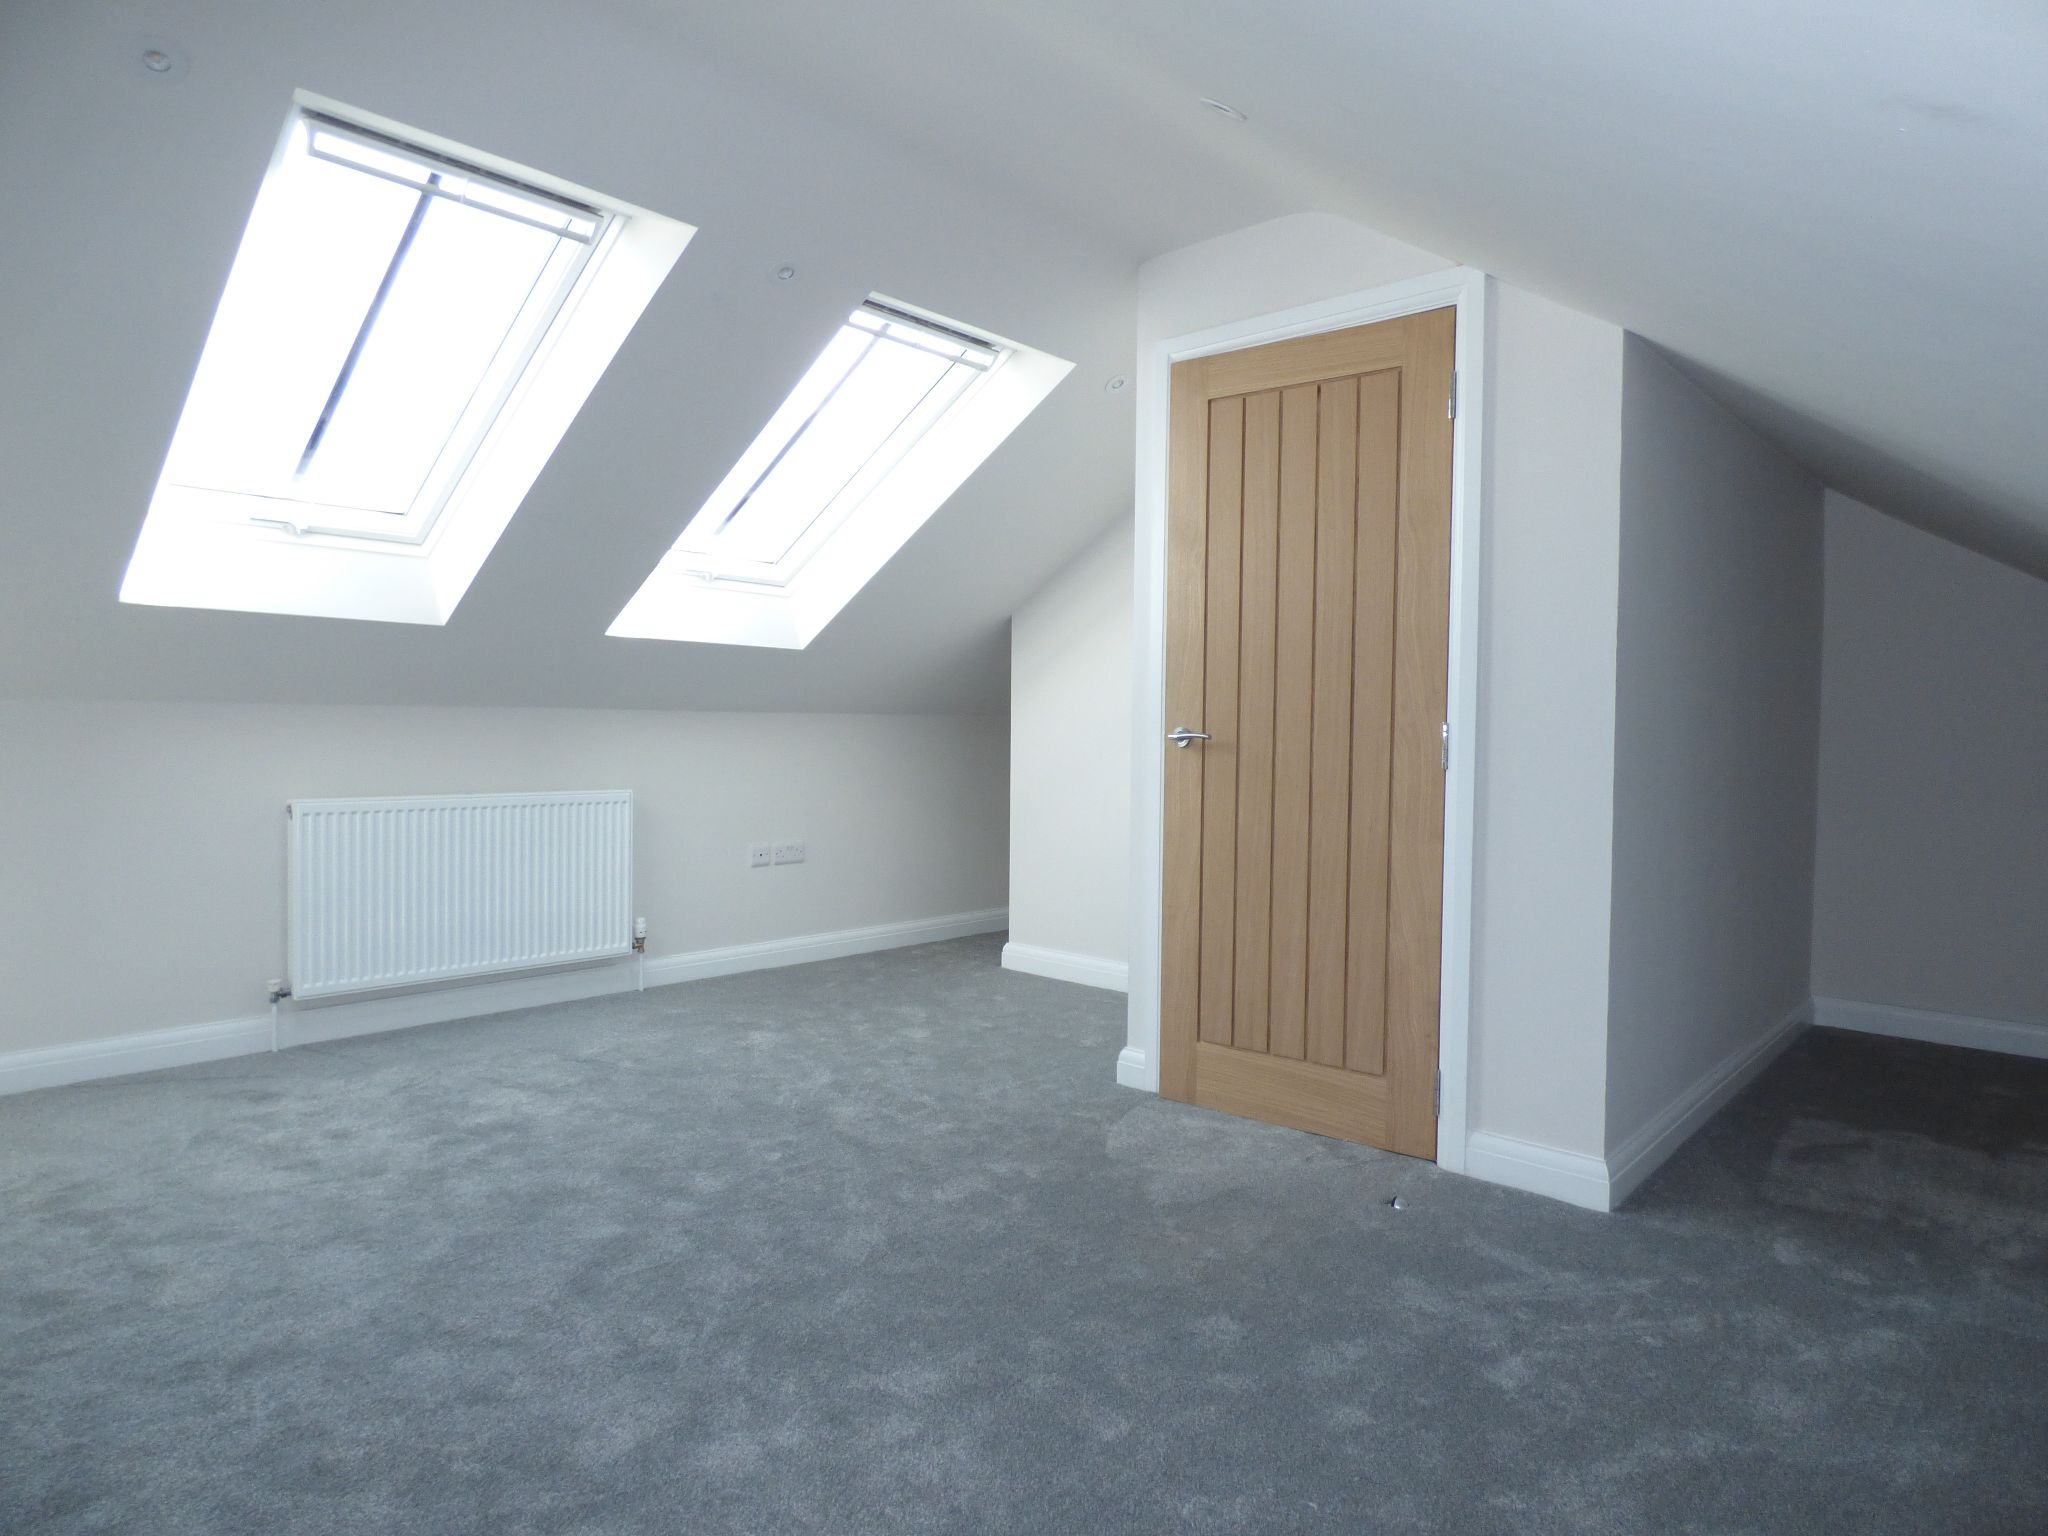 4 Bedroom Mews House For Sale - Photograph 14